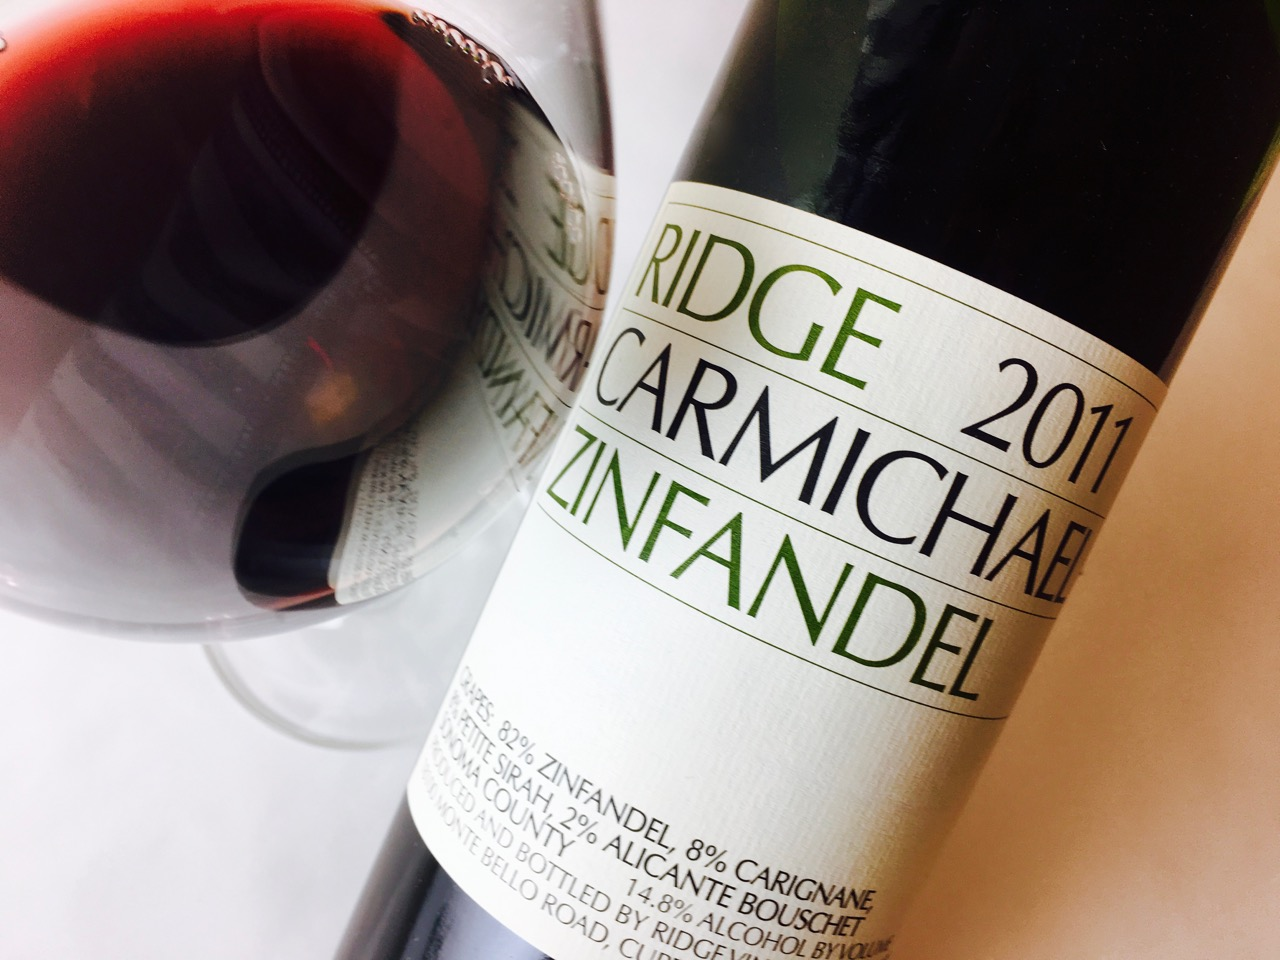 2011 Ridge Vineyards Zinfandel Carmichael Ranch Sonoma County